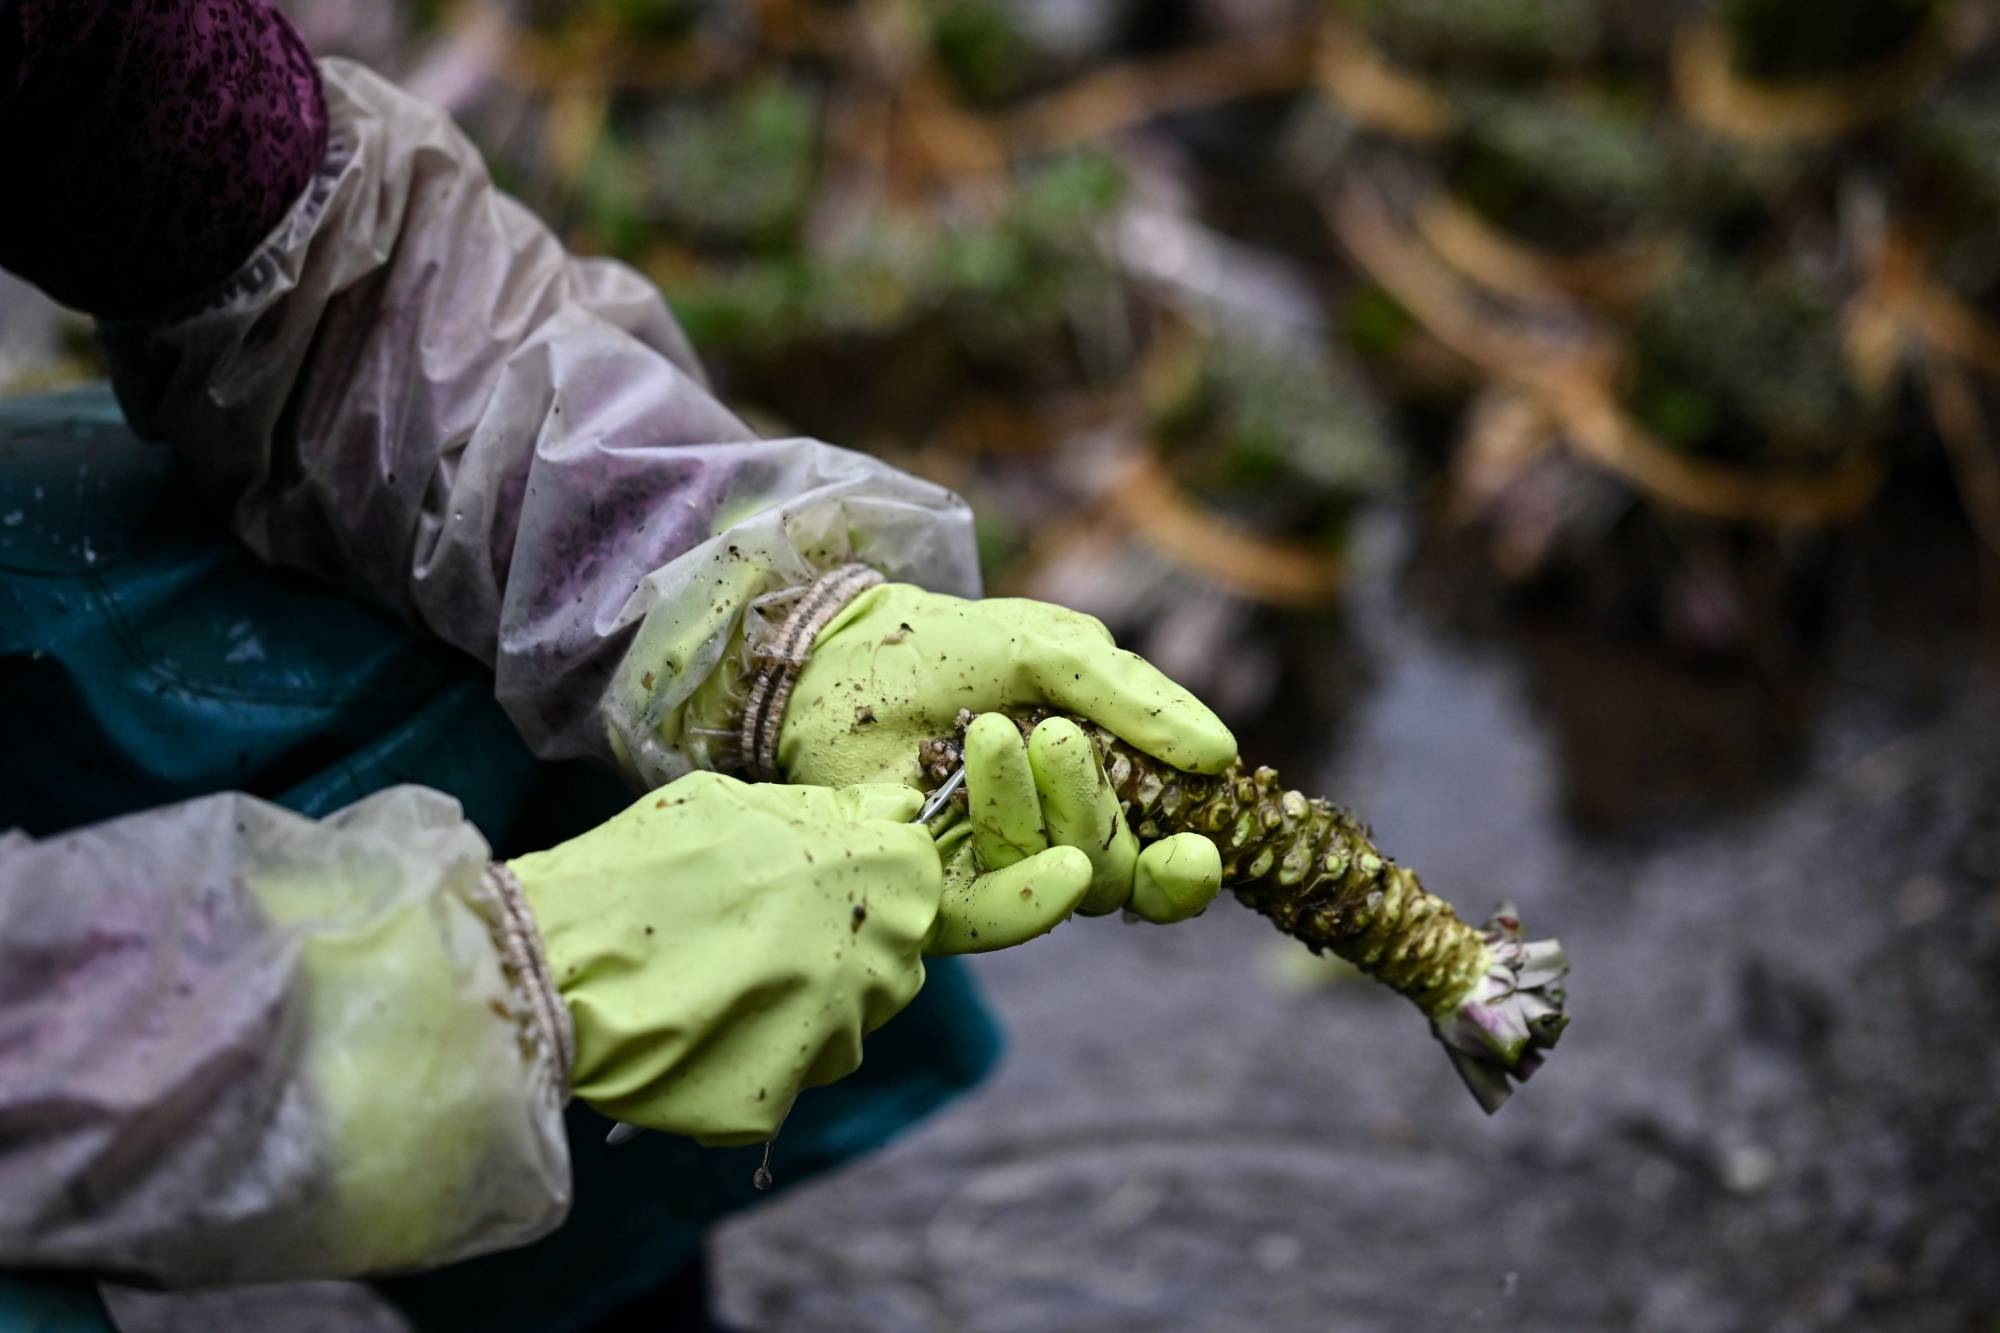 Freshly picked: A woman removes leaves from a wasabi root at a farm in Ikadaba in the city of Izu, Shizuoka Prefecture. | CHARLY TRIBALLEAU / AFP